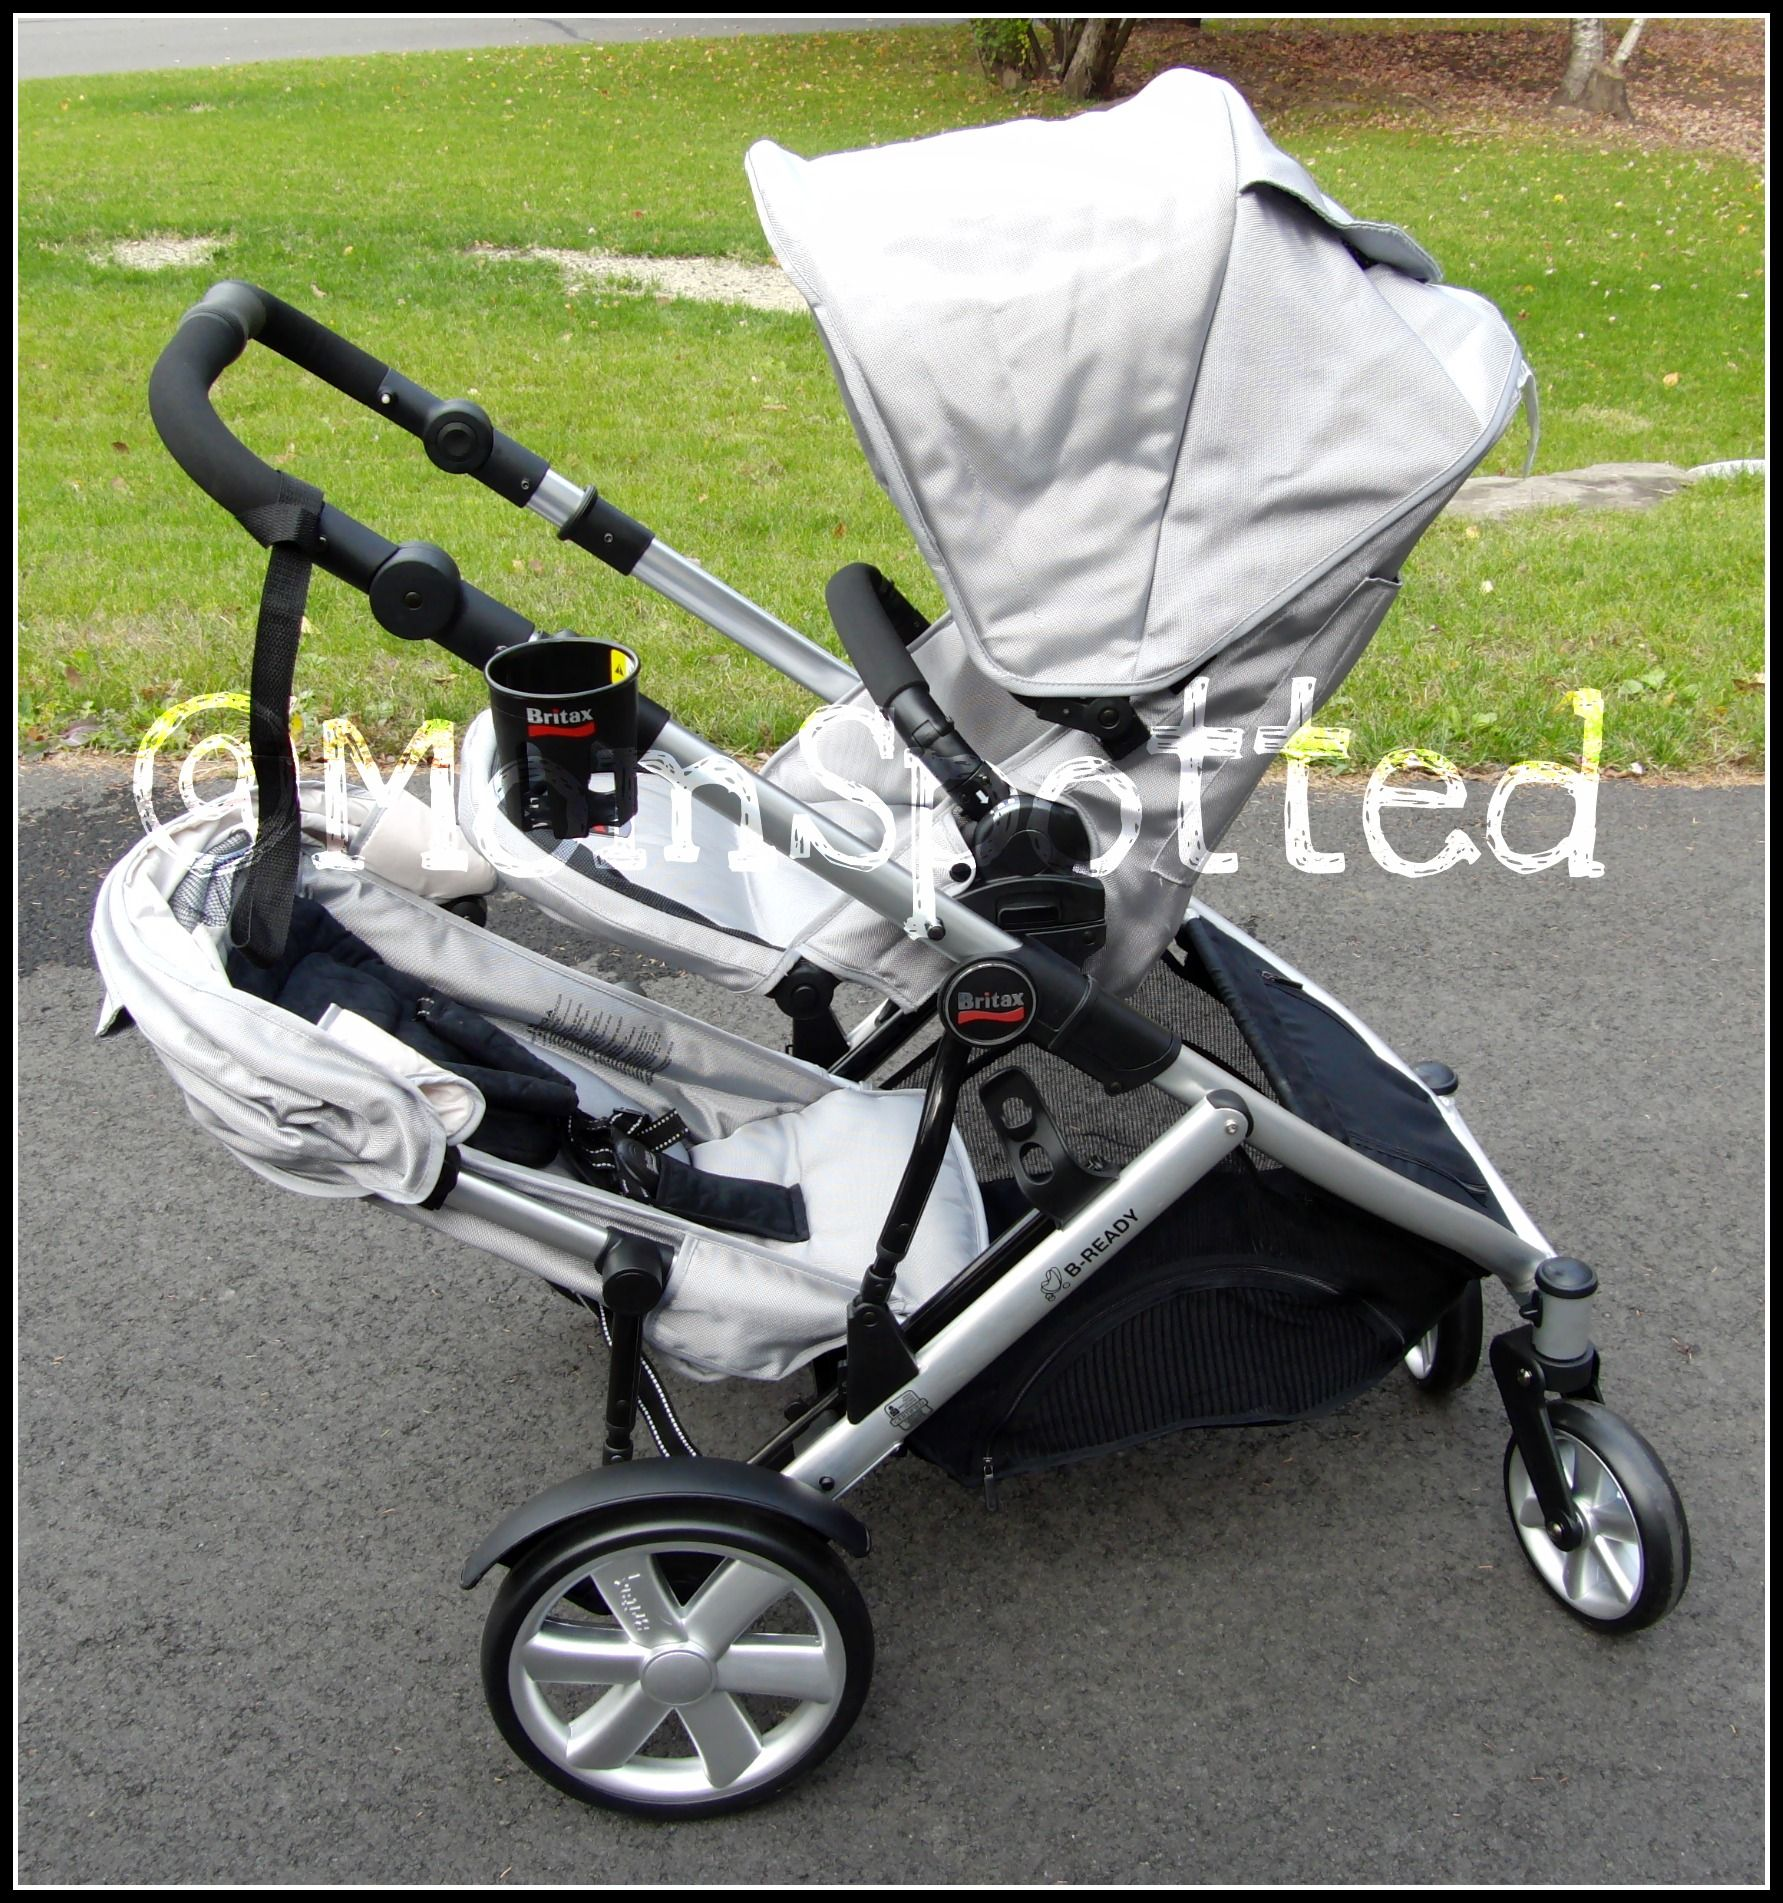 Britax Double Pushchair Reviews Britax B Ready Stroller With Second Seat Review Britax B